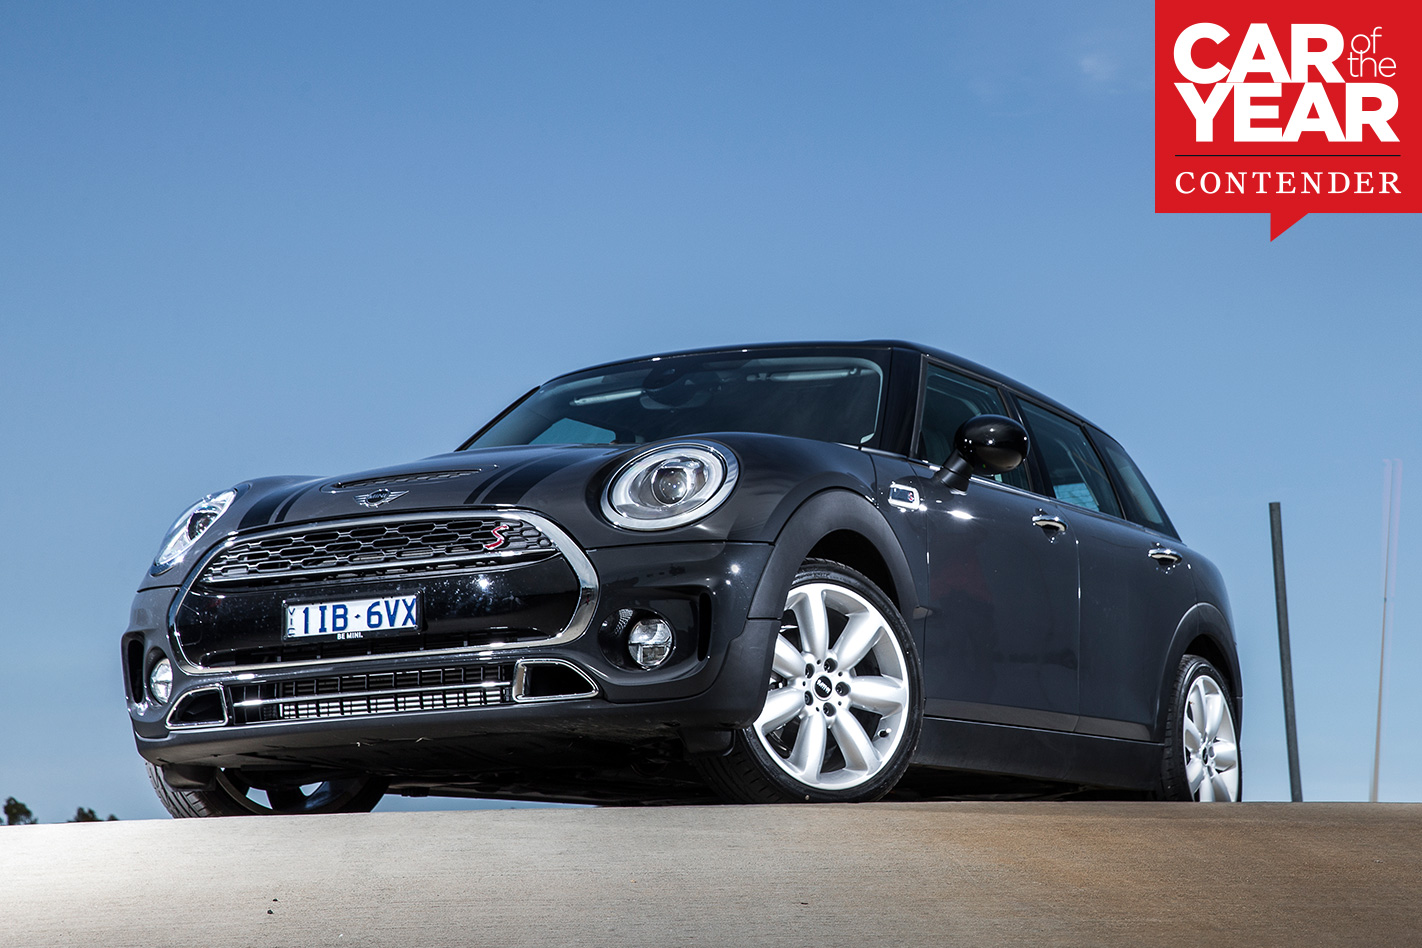 Mini Clubman 2017 Car Of The Year Contender